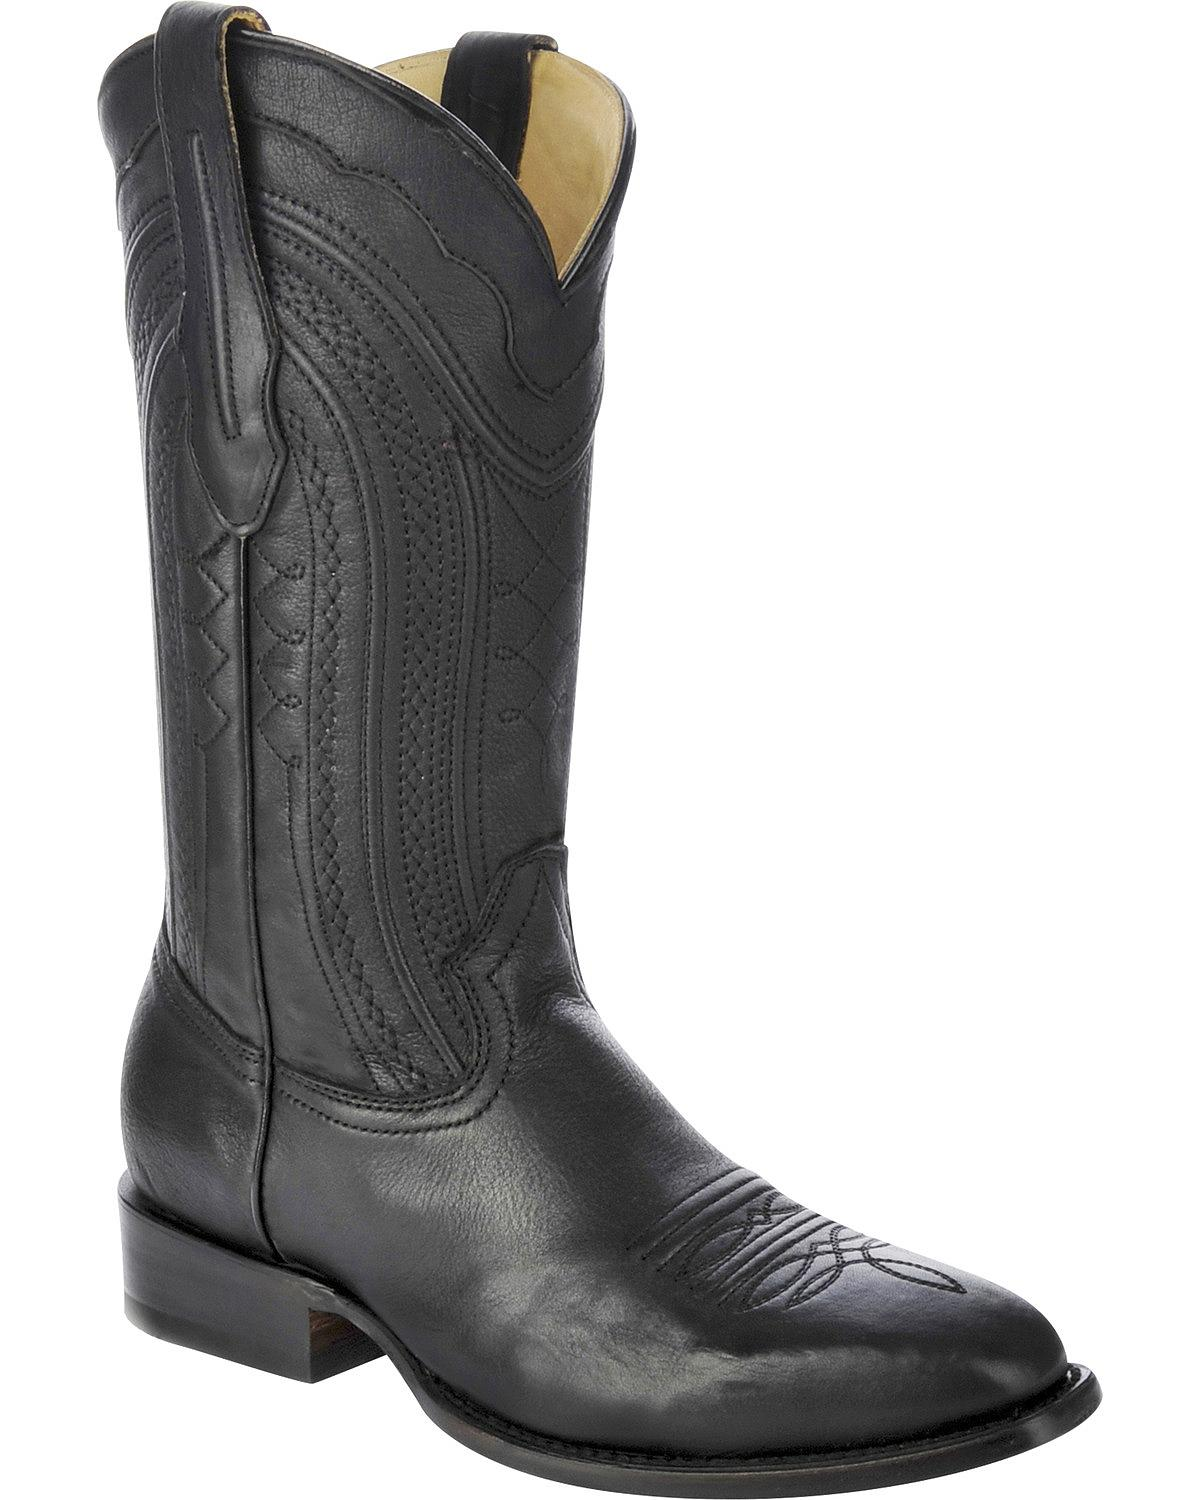 corral s burnished leather cowboy boot square toe